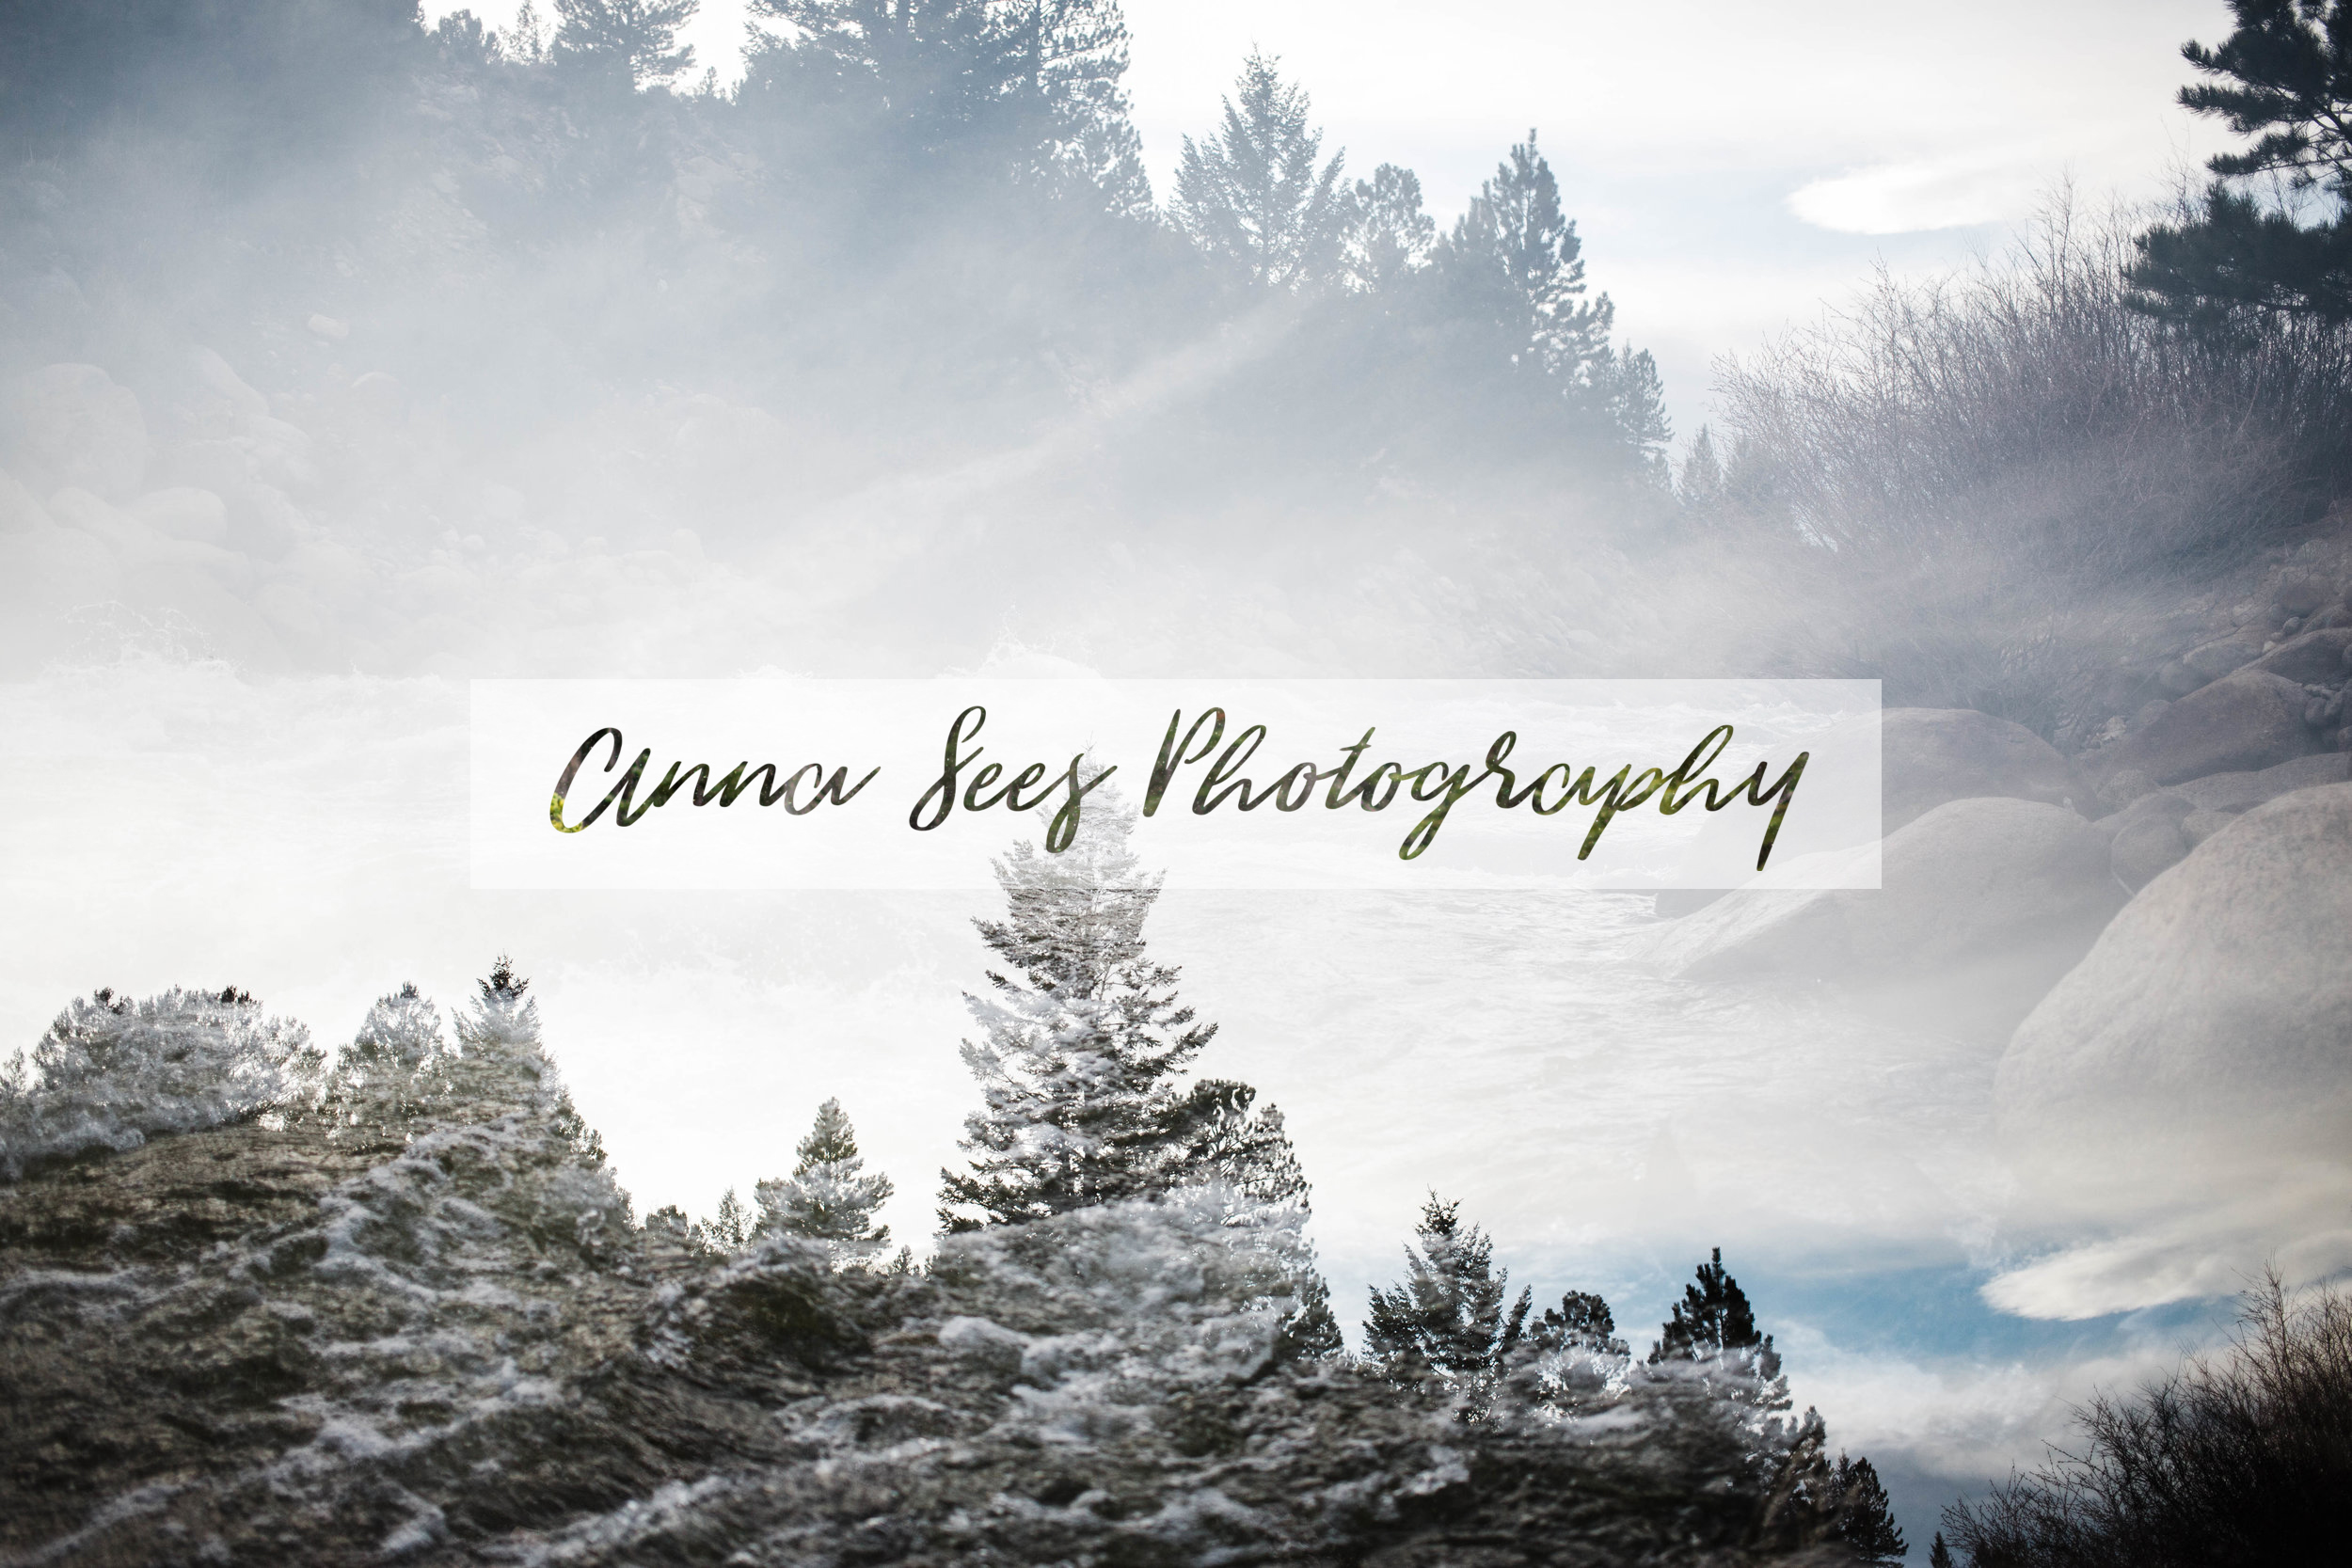 © 2019 Anna Sees Photography, LLC